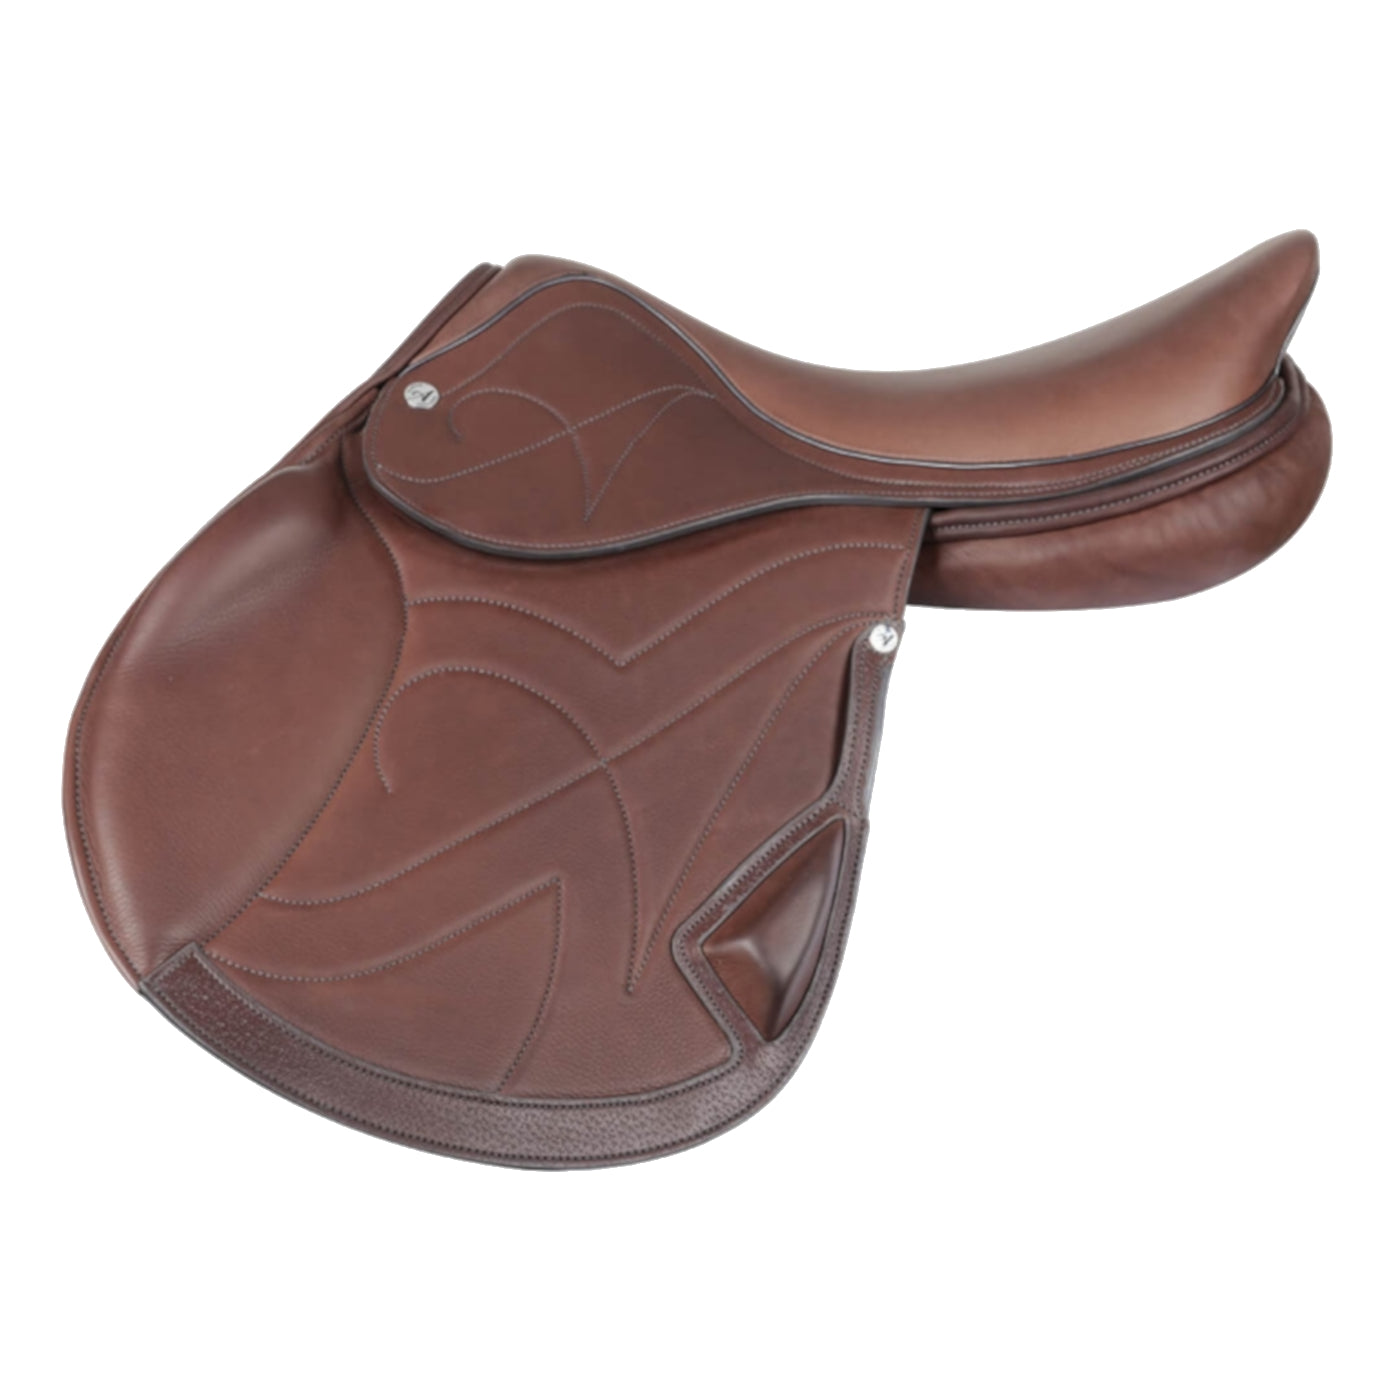 Albion Evolve Sports Saddle